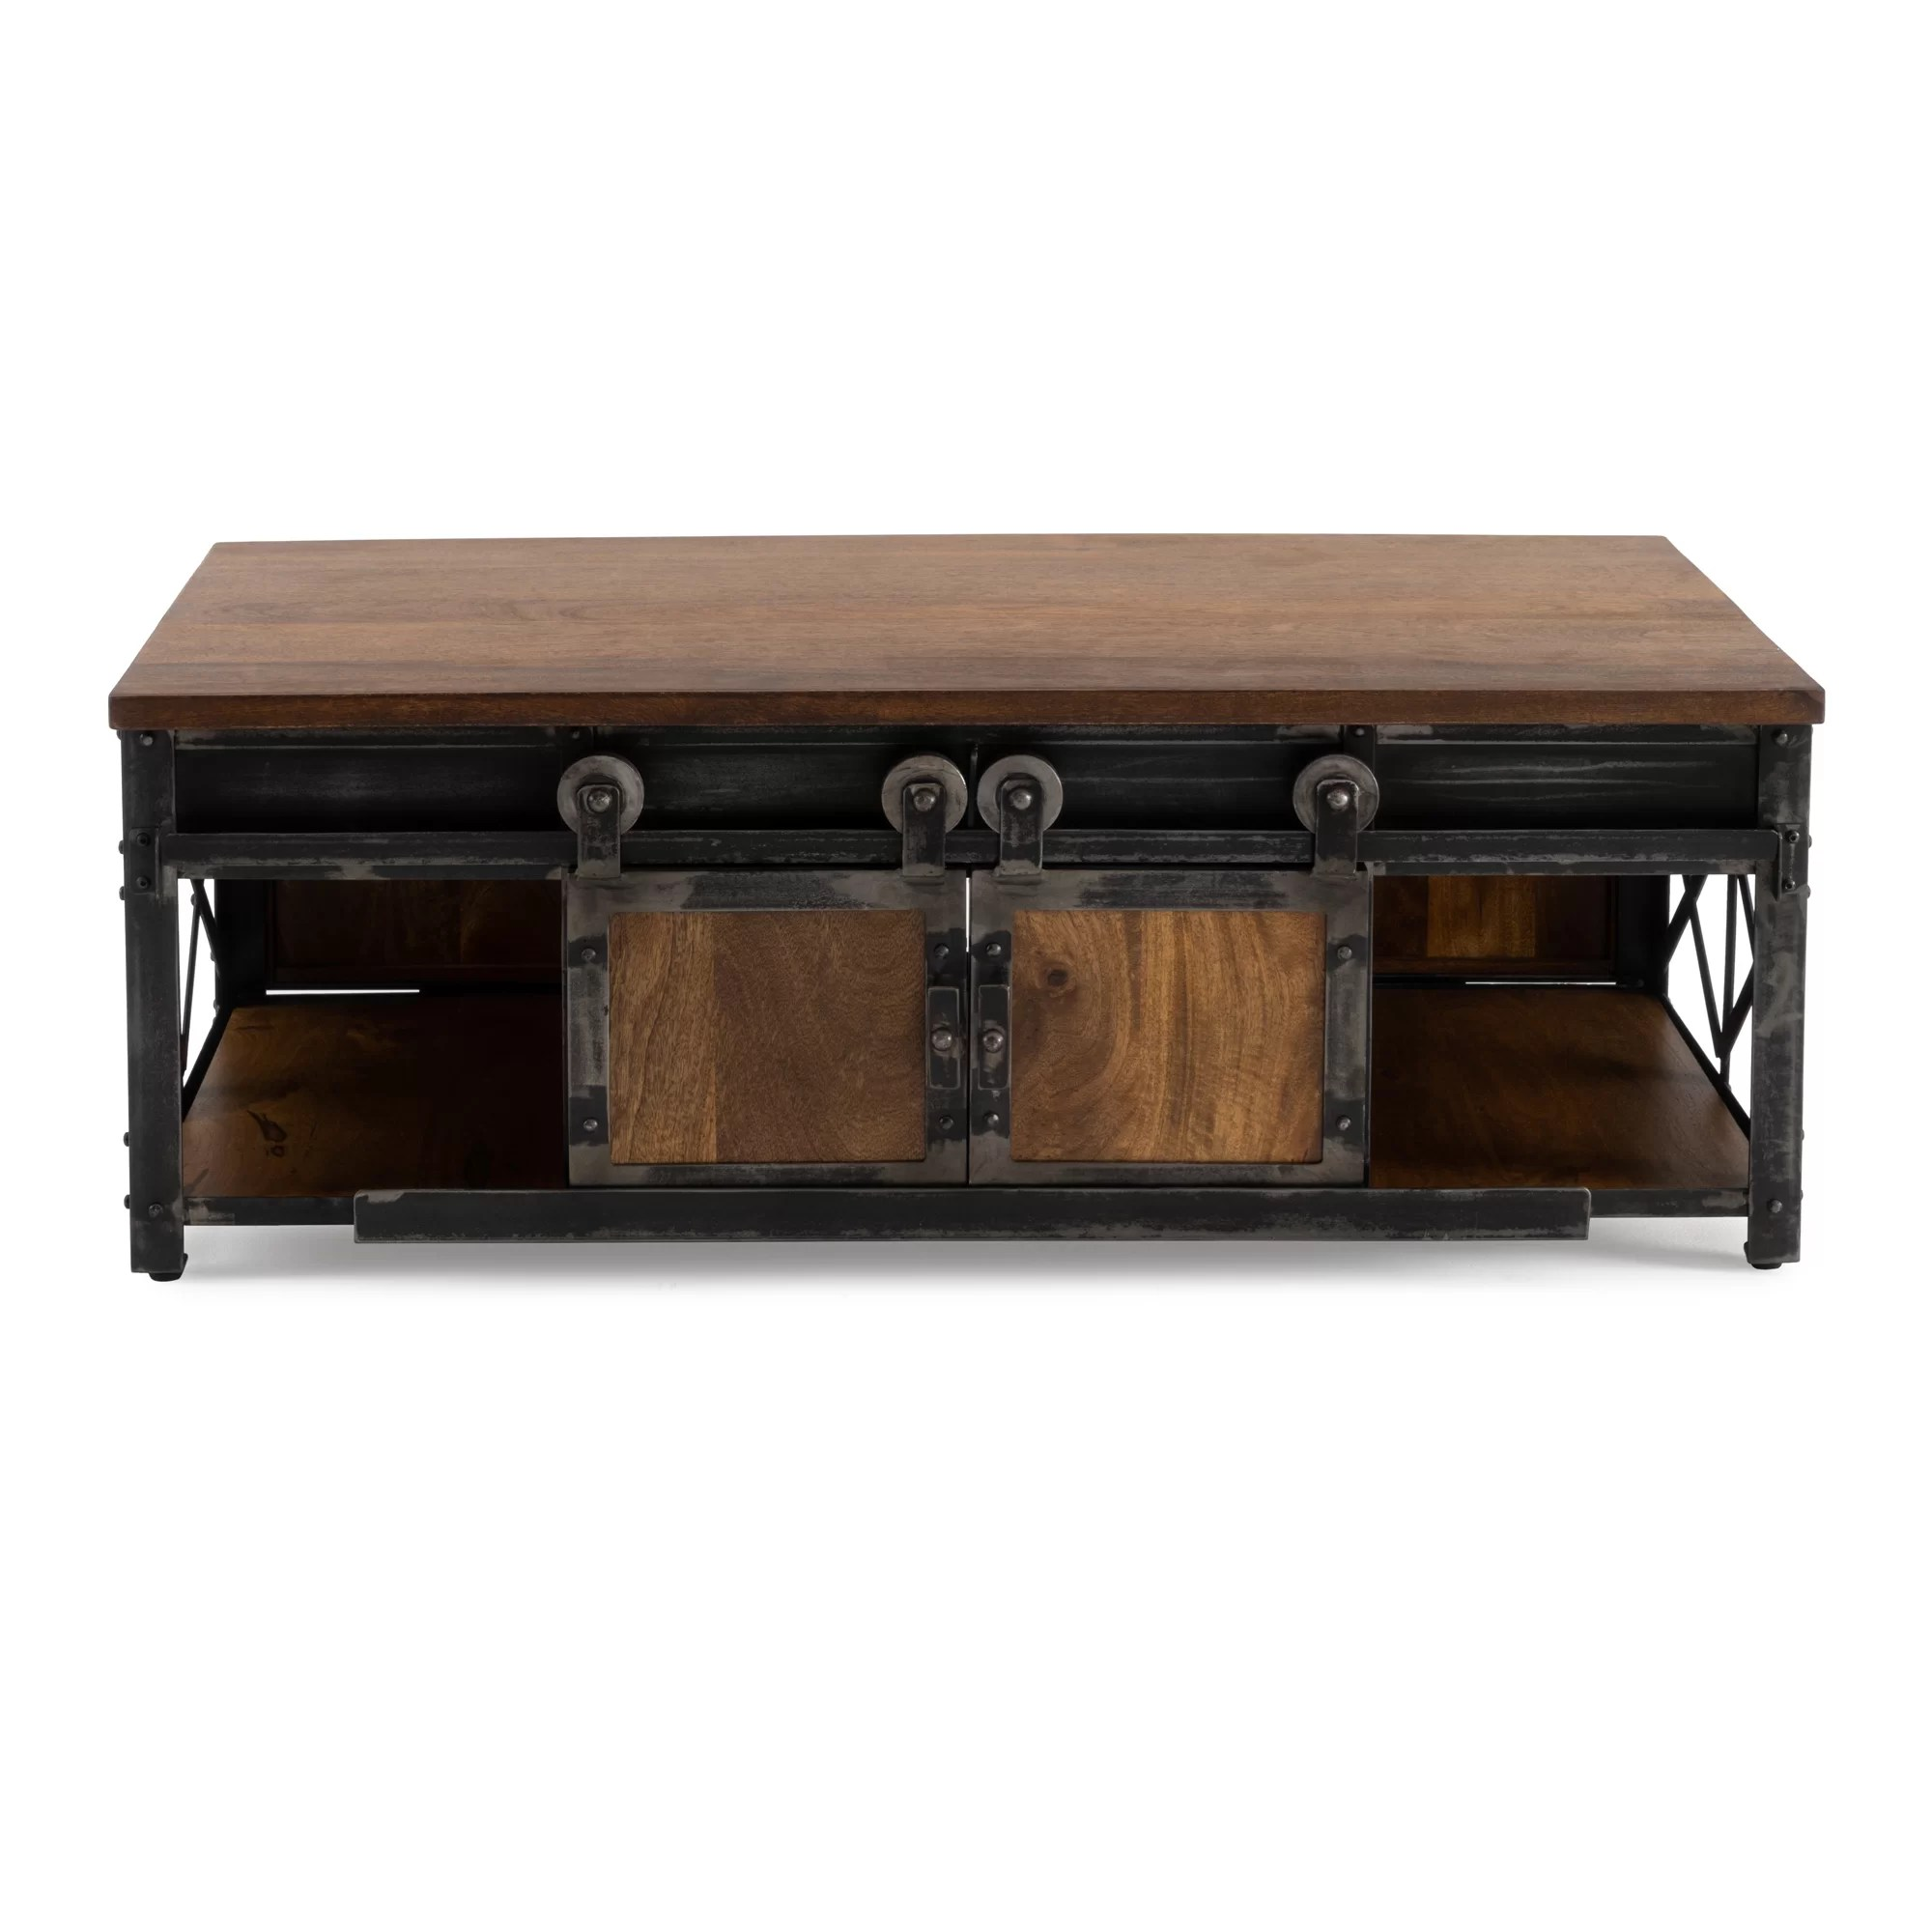 Storage Table On Wheels Estella Coffee Table With Storage